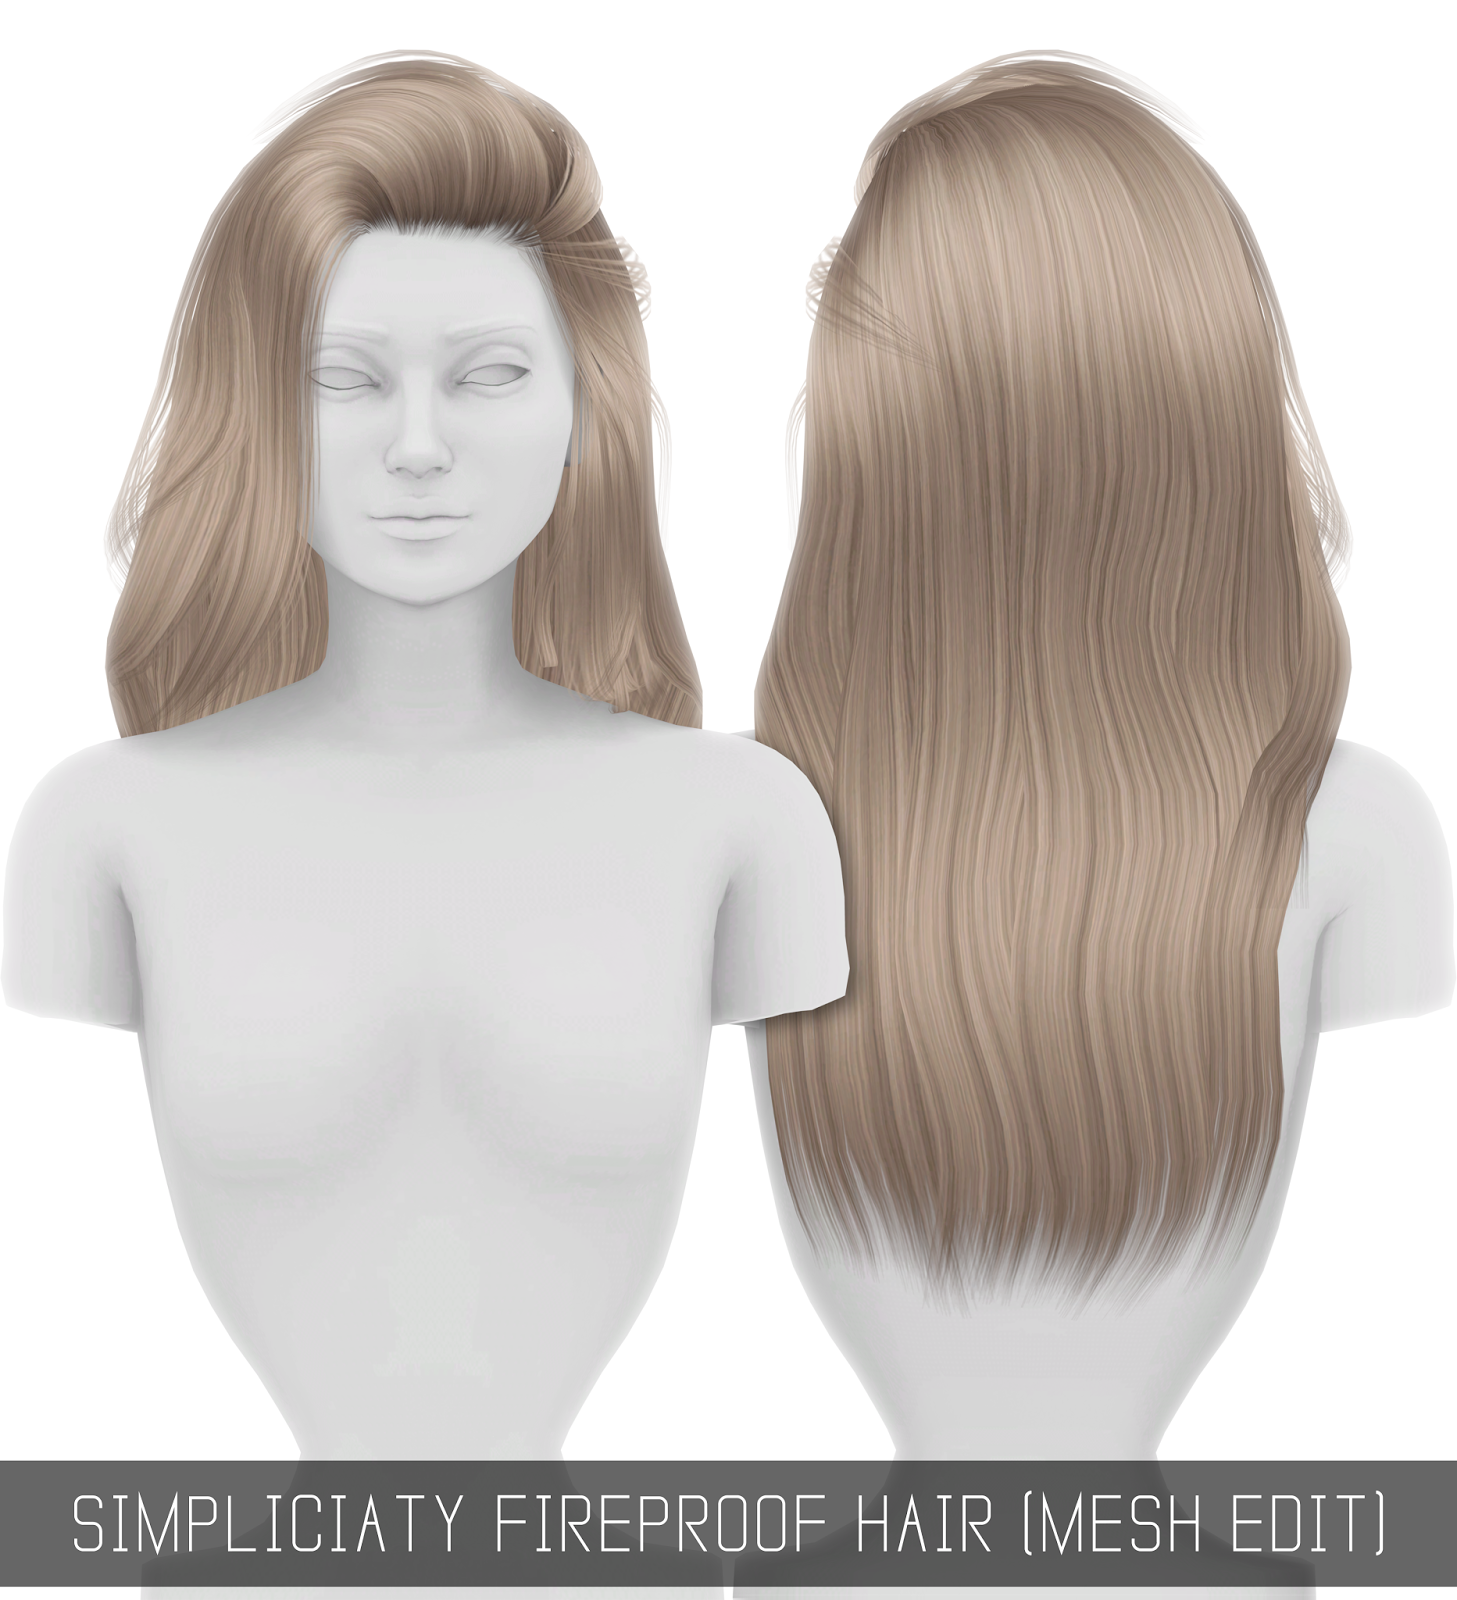 Fireproof Hair Mesh Edit Simpliciaty